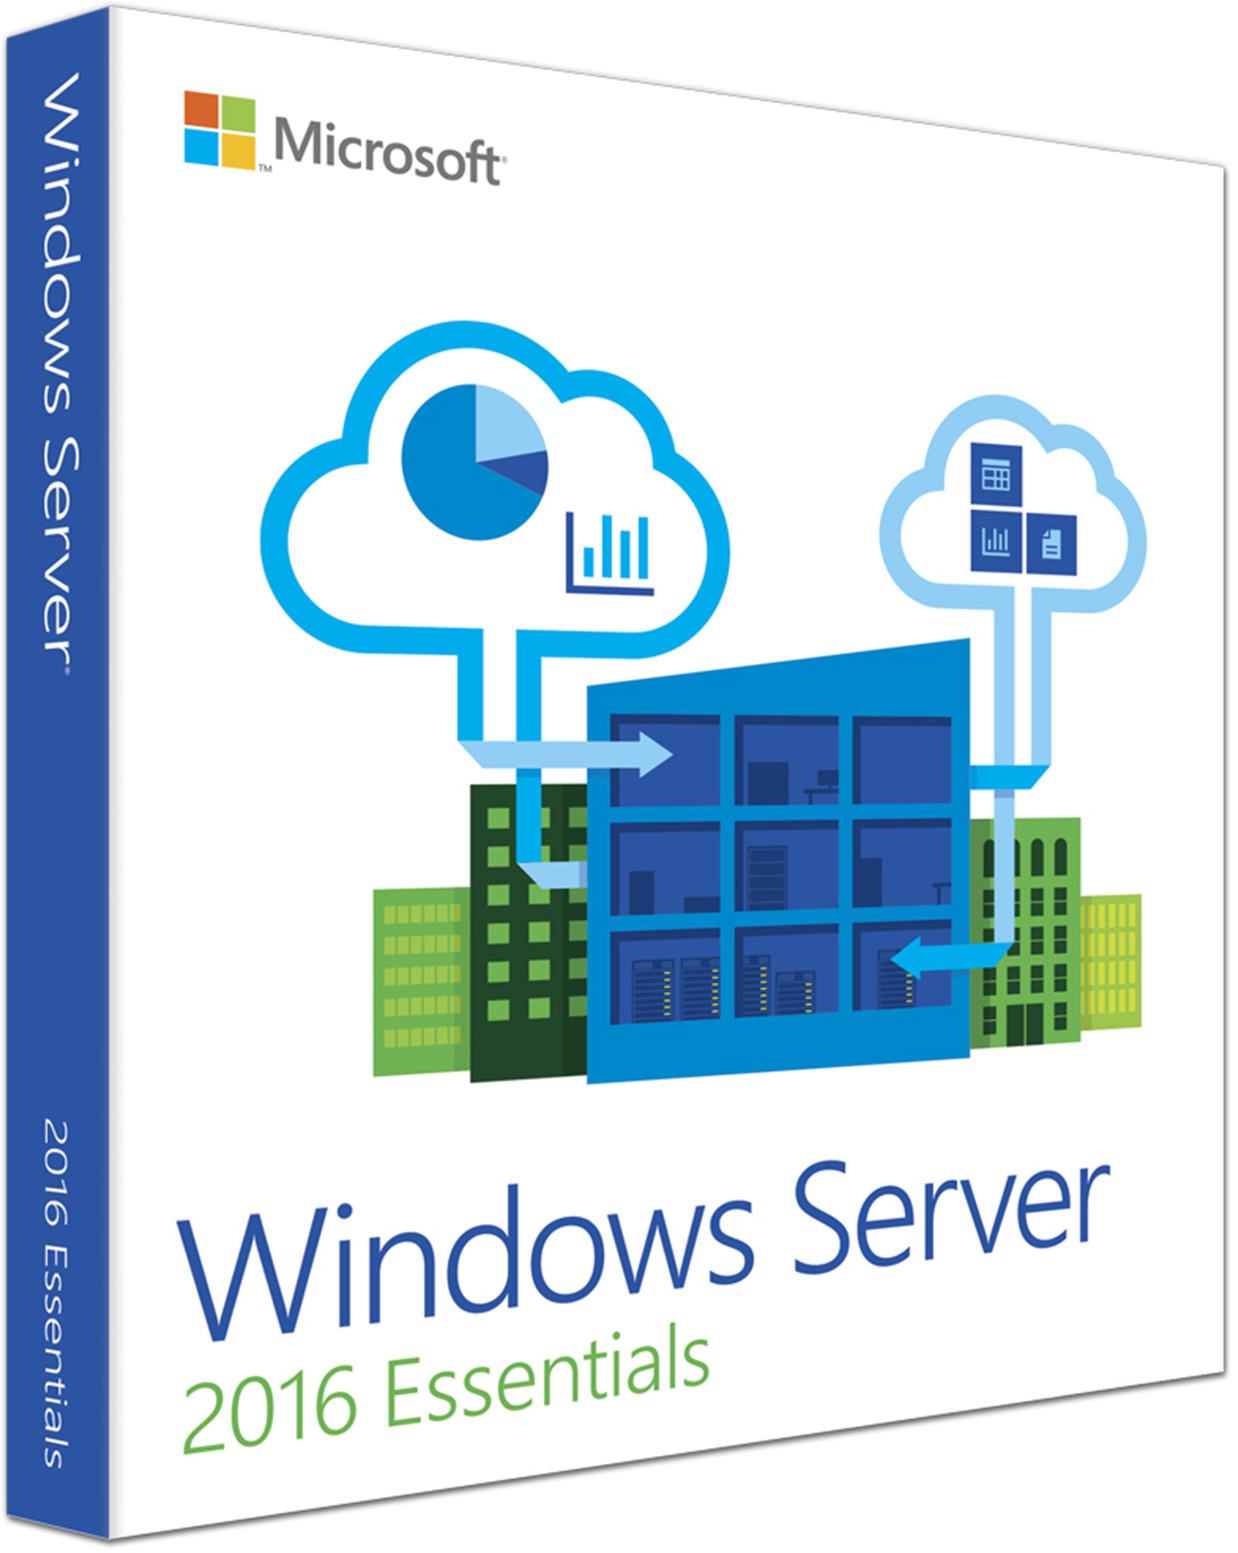 Windows Server 2016 Essentials (Download)